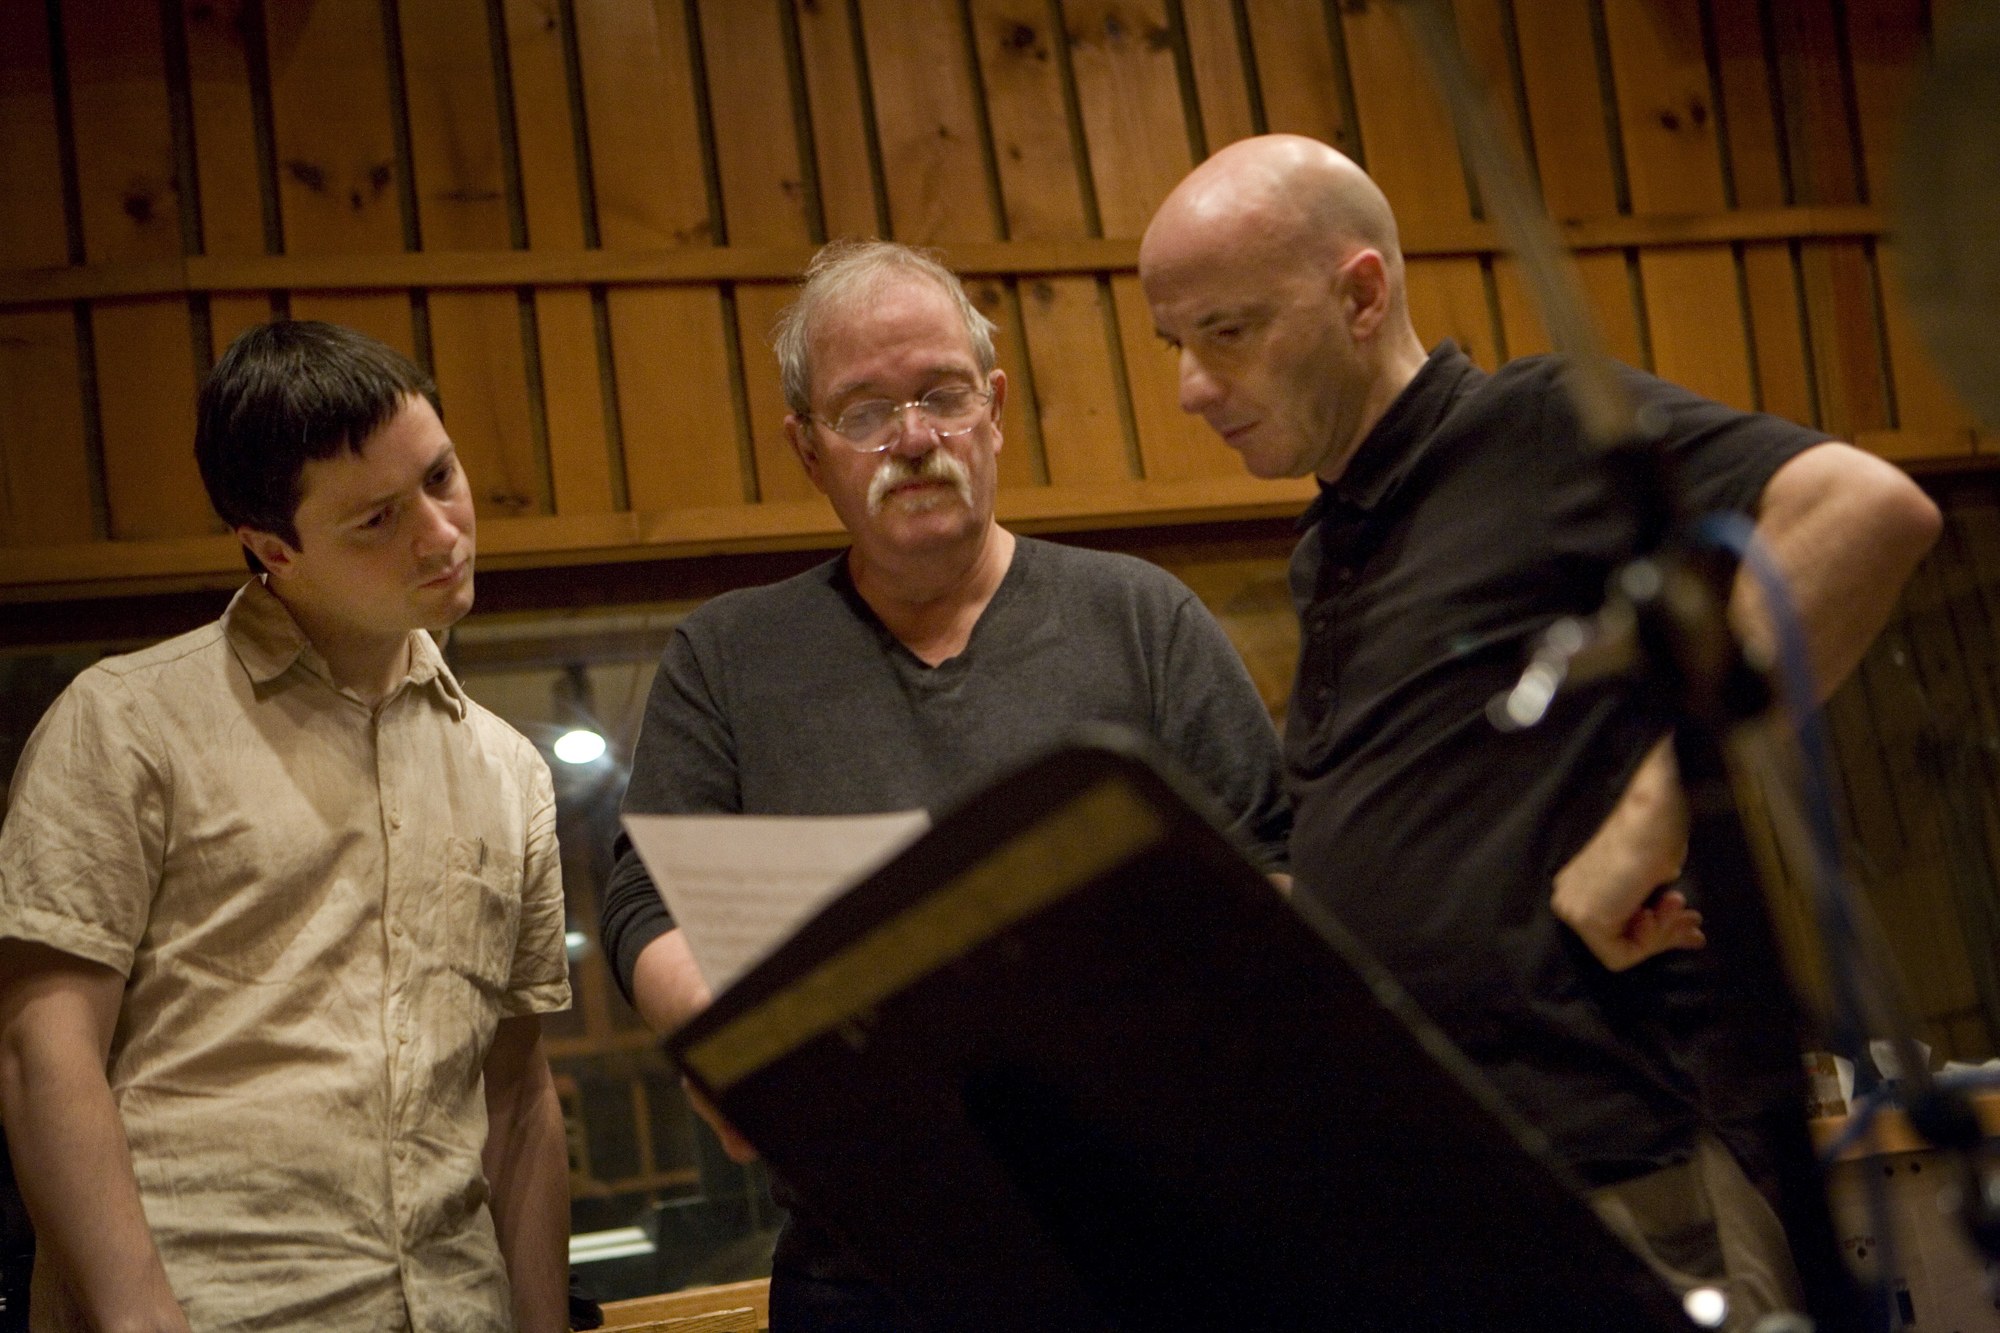 Thomas Morgan, John Abercrombie and Joey Baron looking over a score during the recording session for the 2009 album Wait Till You See Her (Photo © Robert Lewis, courtesy ECM).